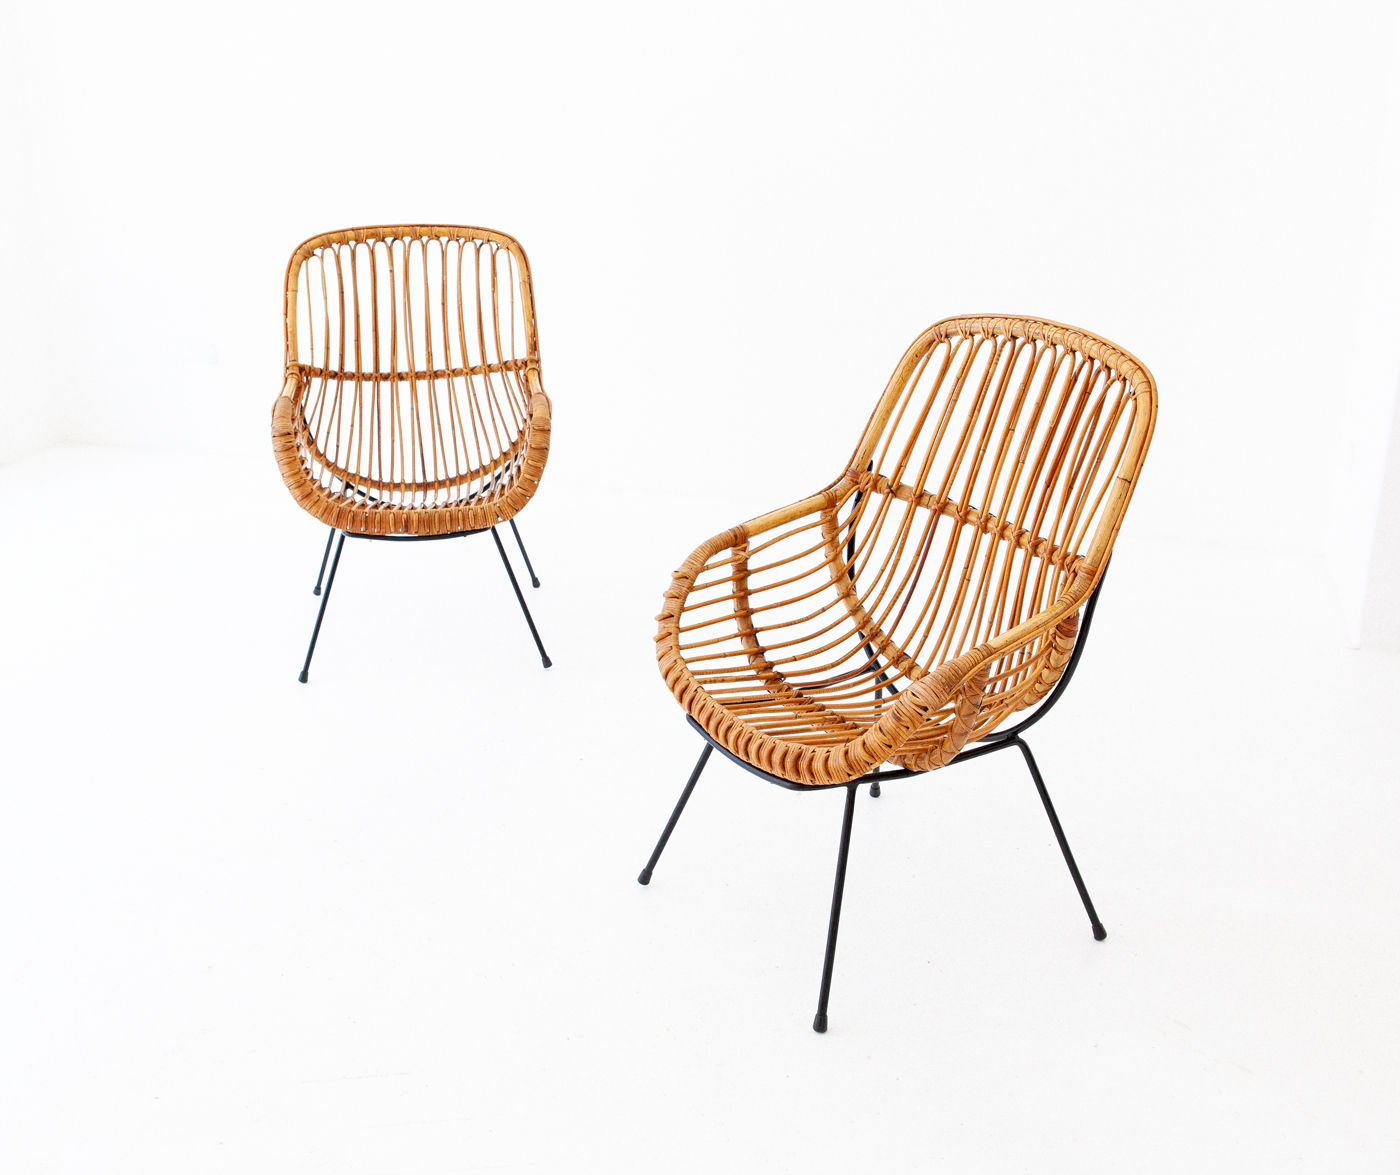 1950s-italian-iron-rattan-wicker-lounge-chairs-2-SE282